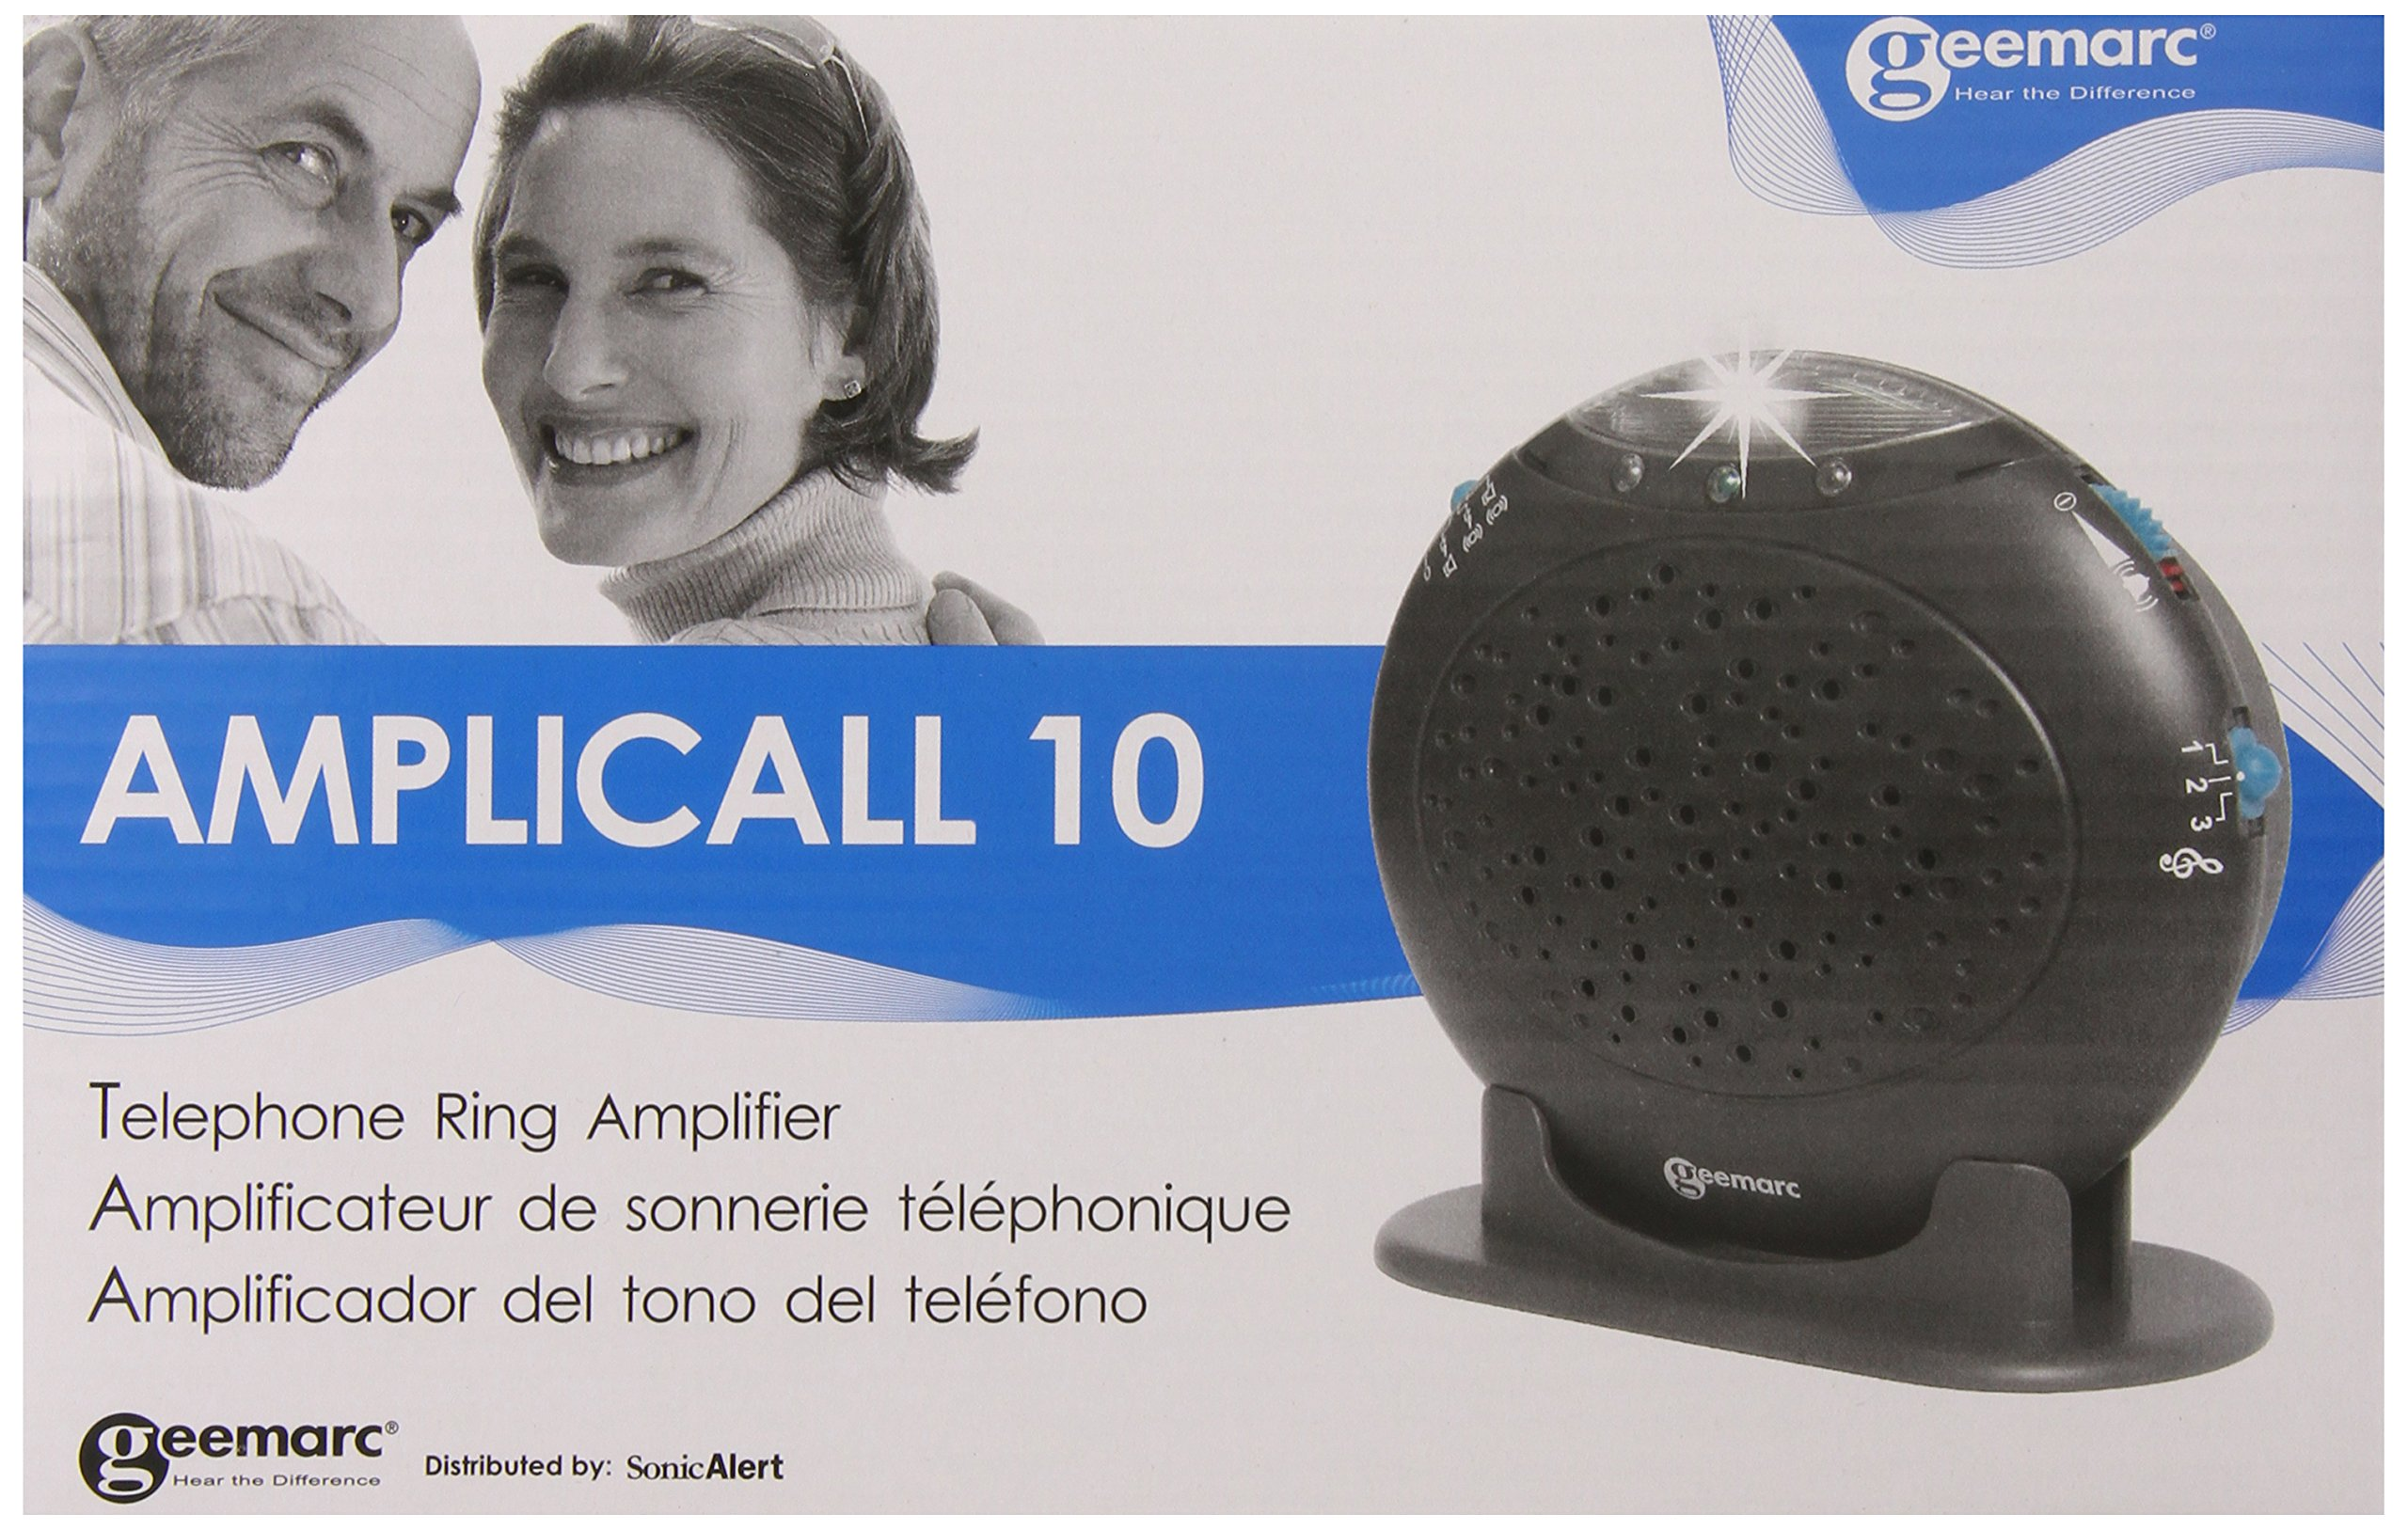 Geemarc Amplicall10 Telephone Ring Amplifier